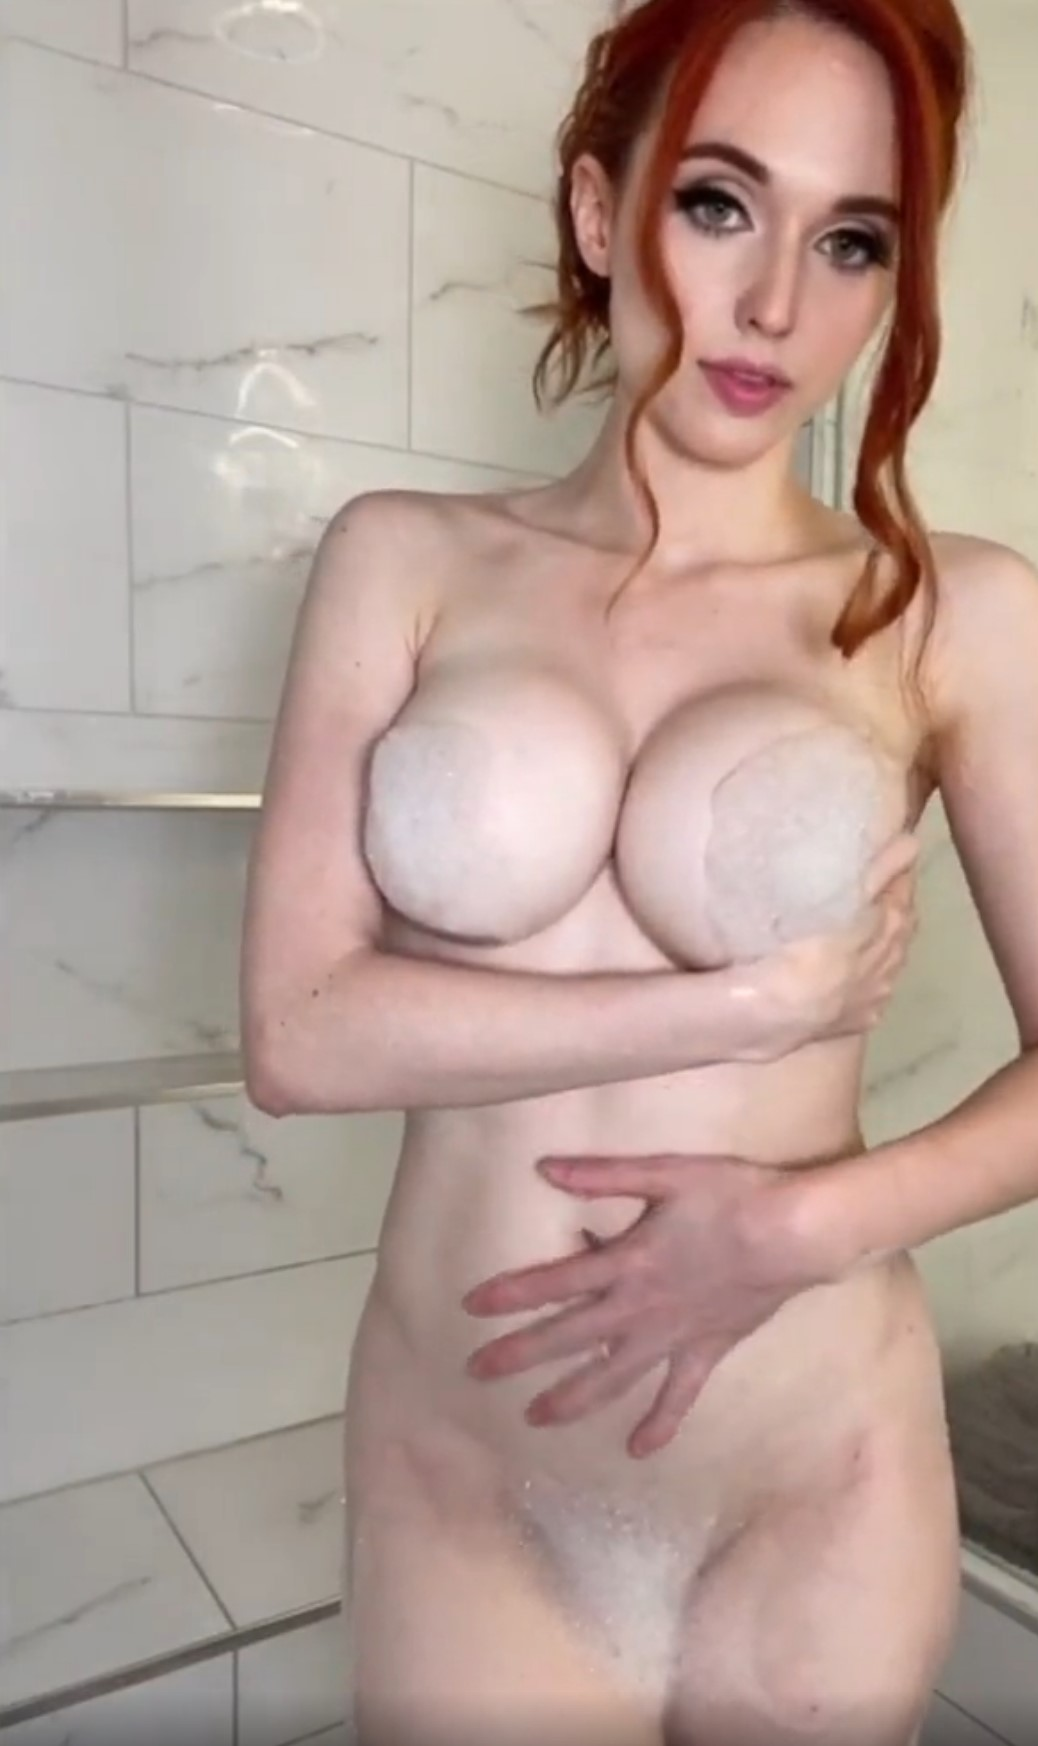 Amouranth Nude Shower Tease Video Leaked Onlyfans Leaks